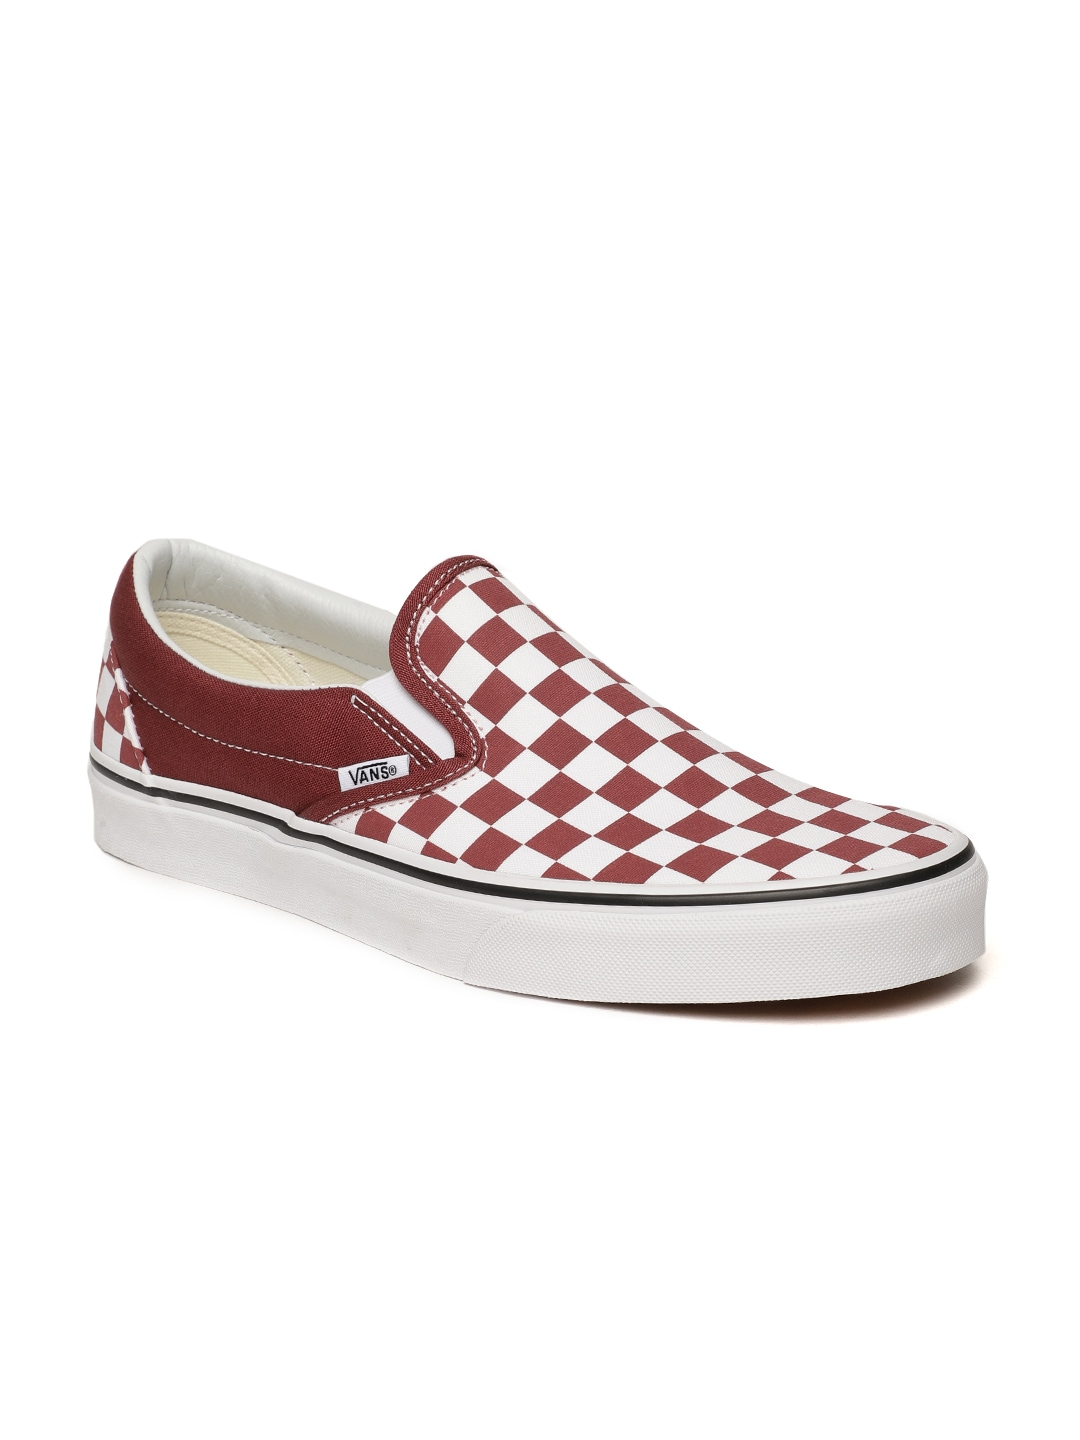 a677b5daff890f Vans Shoes for Women - Buy Vans Shoes for Girls Online - Myntra